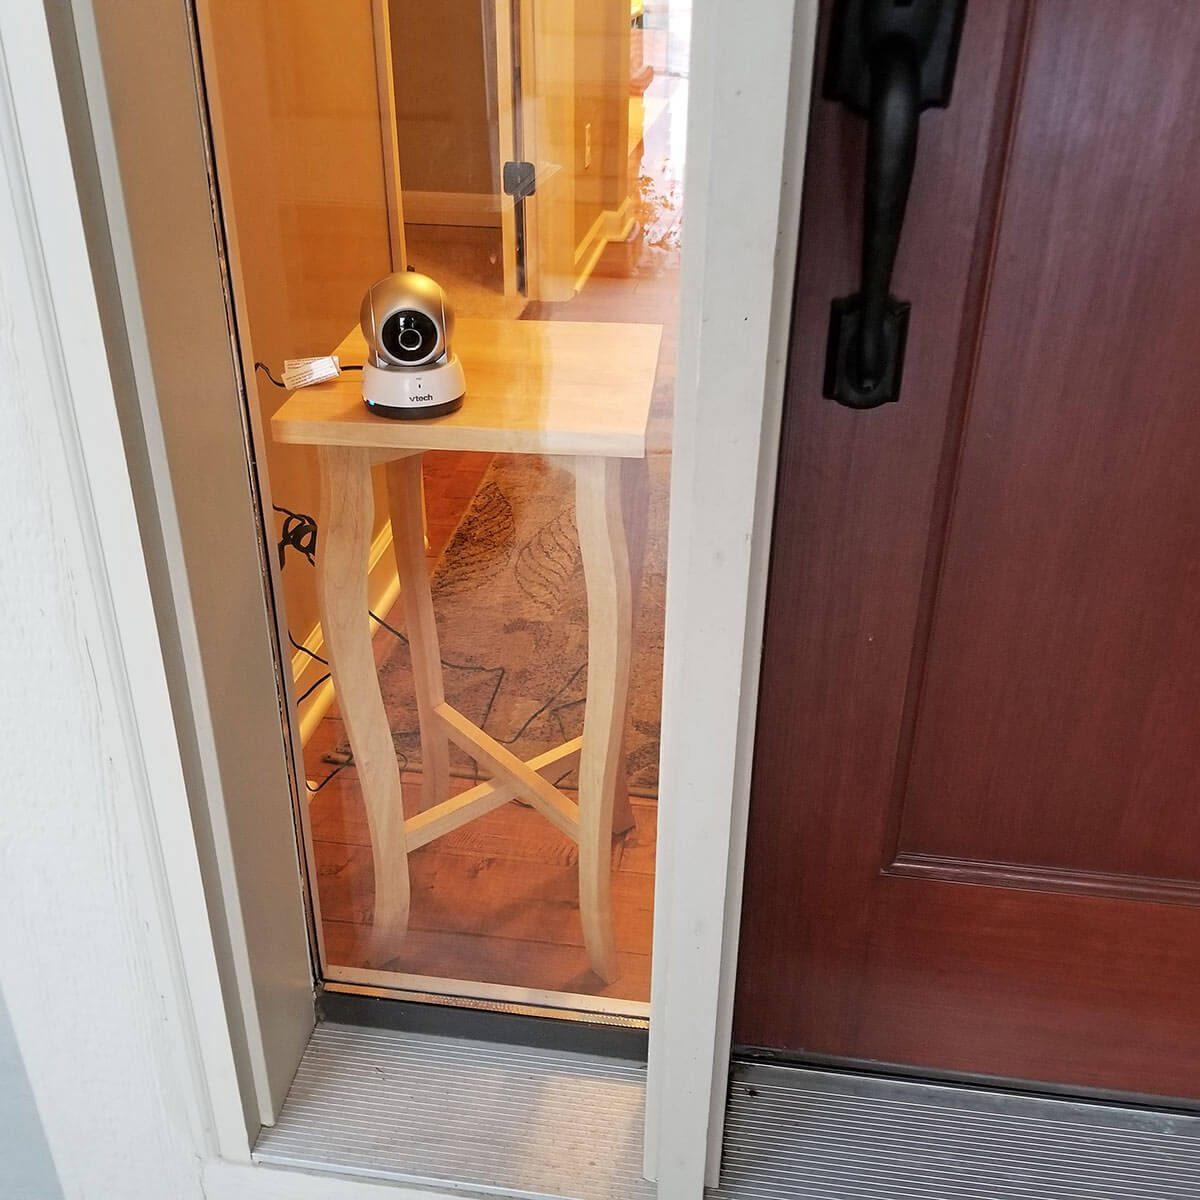 How to reinforce doors entry door and lock reinforcements monitor your home from your phone rubansaba